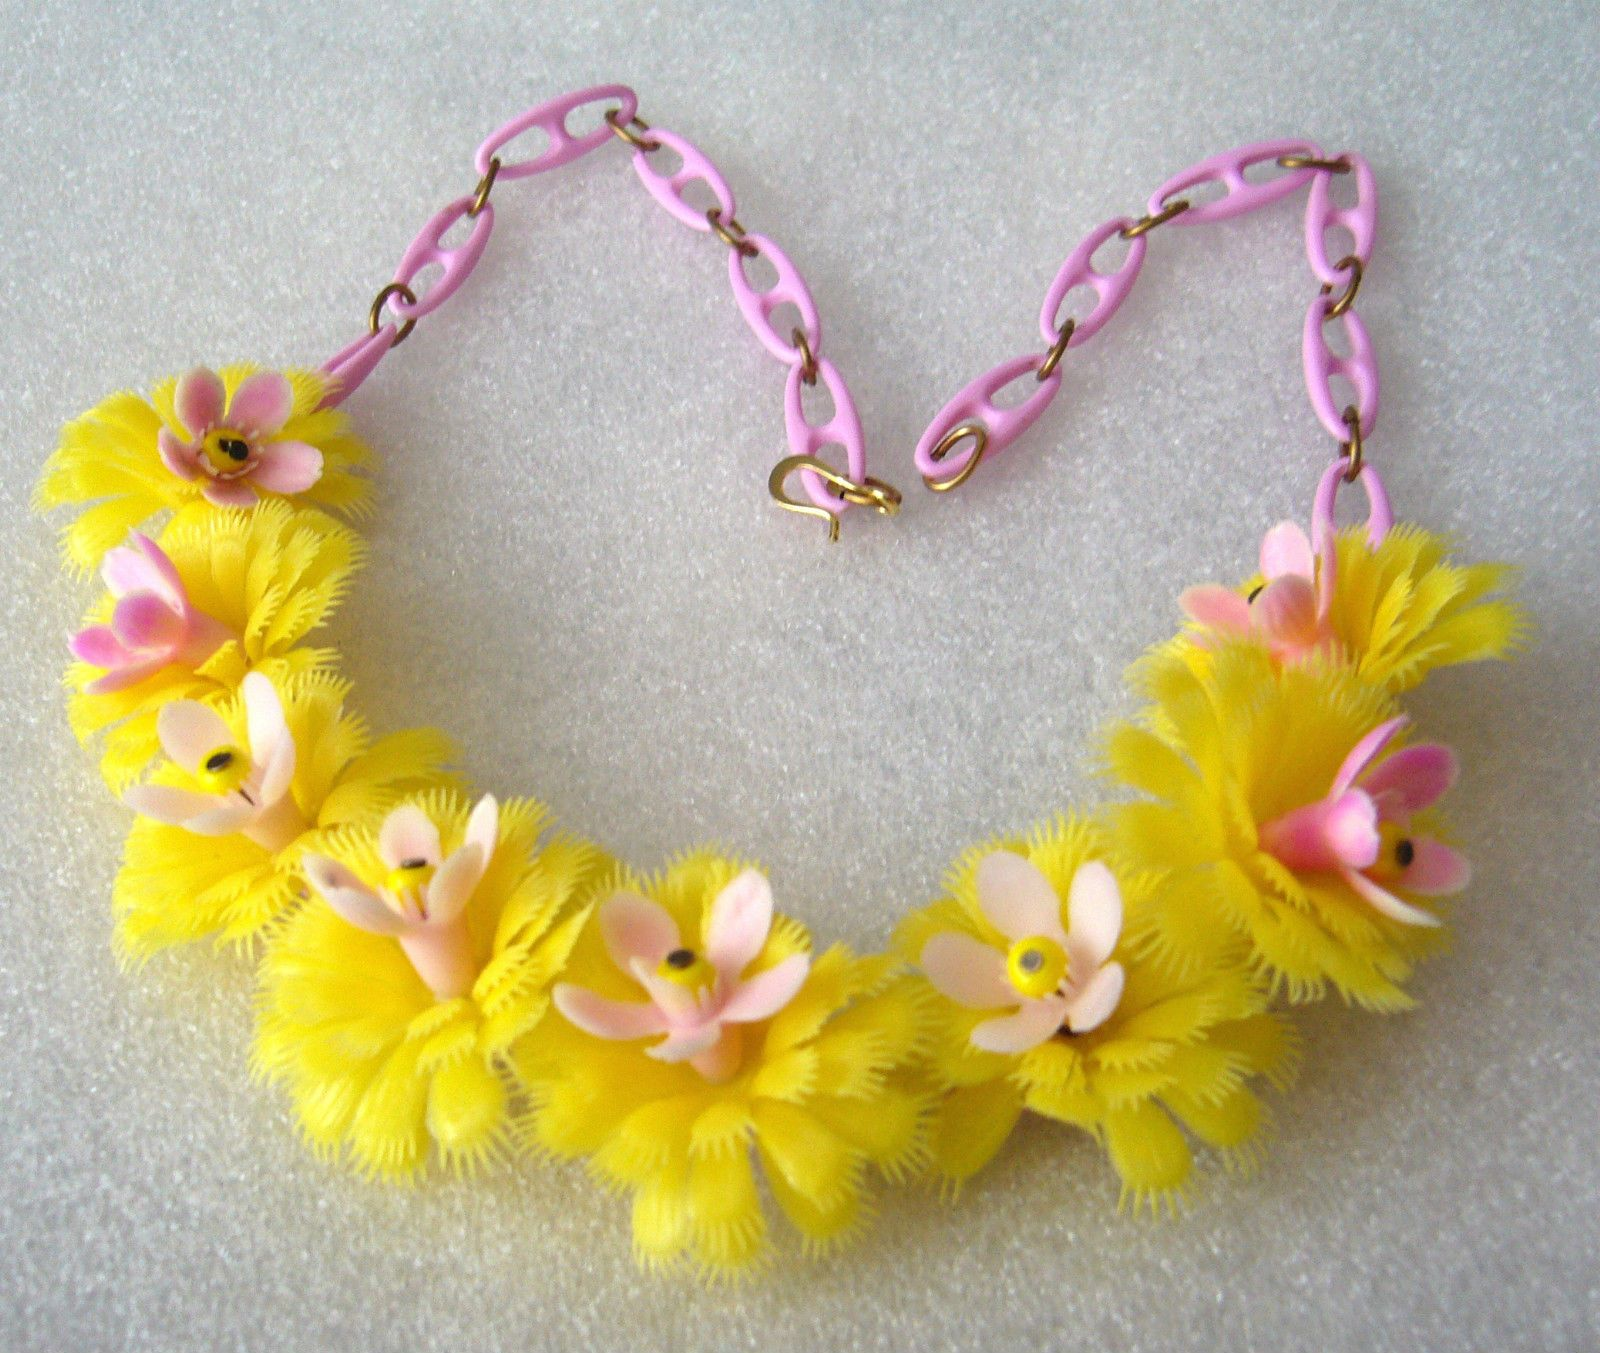 Vintage celluloid soft early plastic yellow flowers necklace vintage celluloid soft early plastic yellow flowers necklace mightylinksfo Choice Image